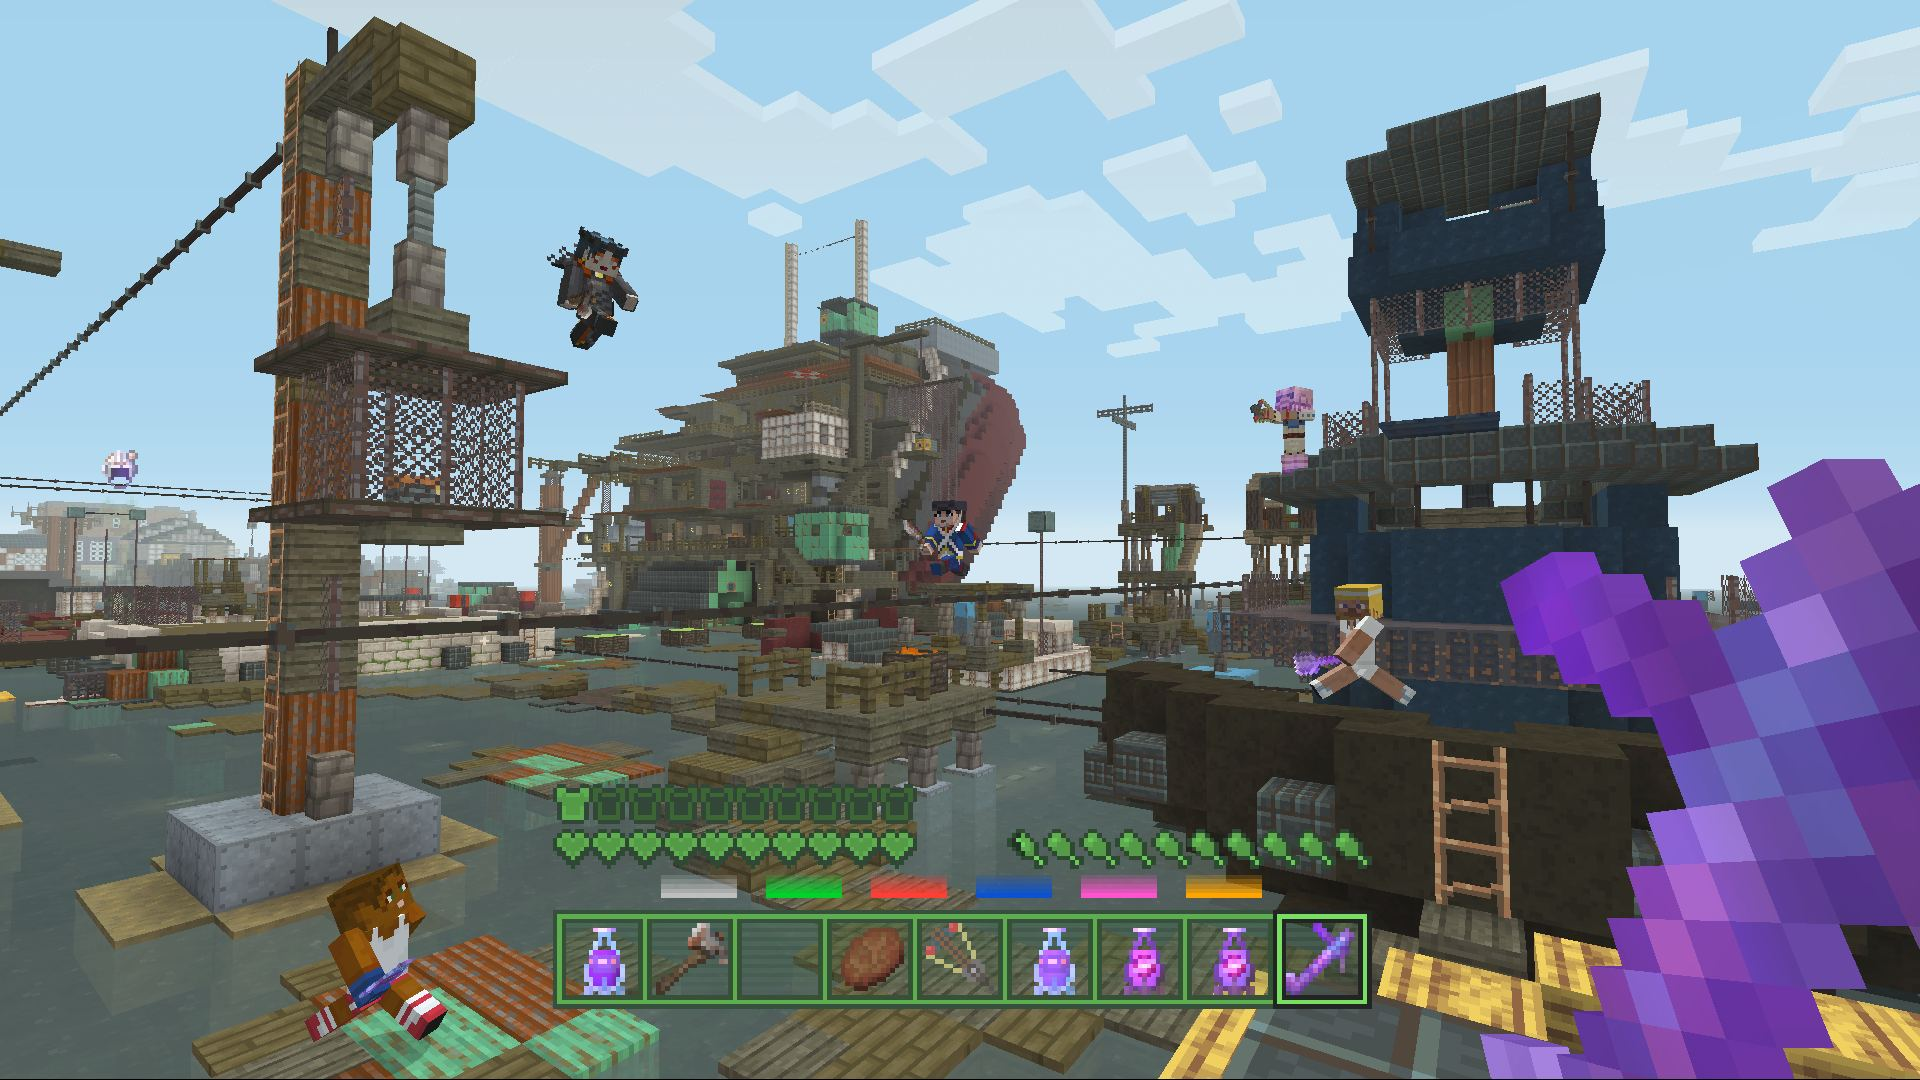 Minecraft Fallout Battle Map Pack On PS Official PlayStation - Fallout game map of us